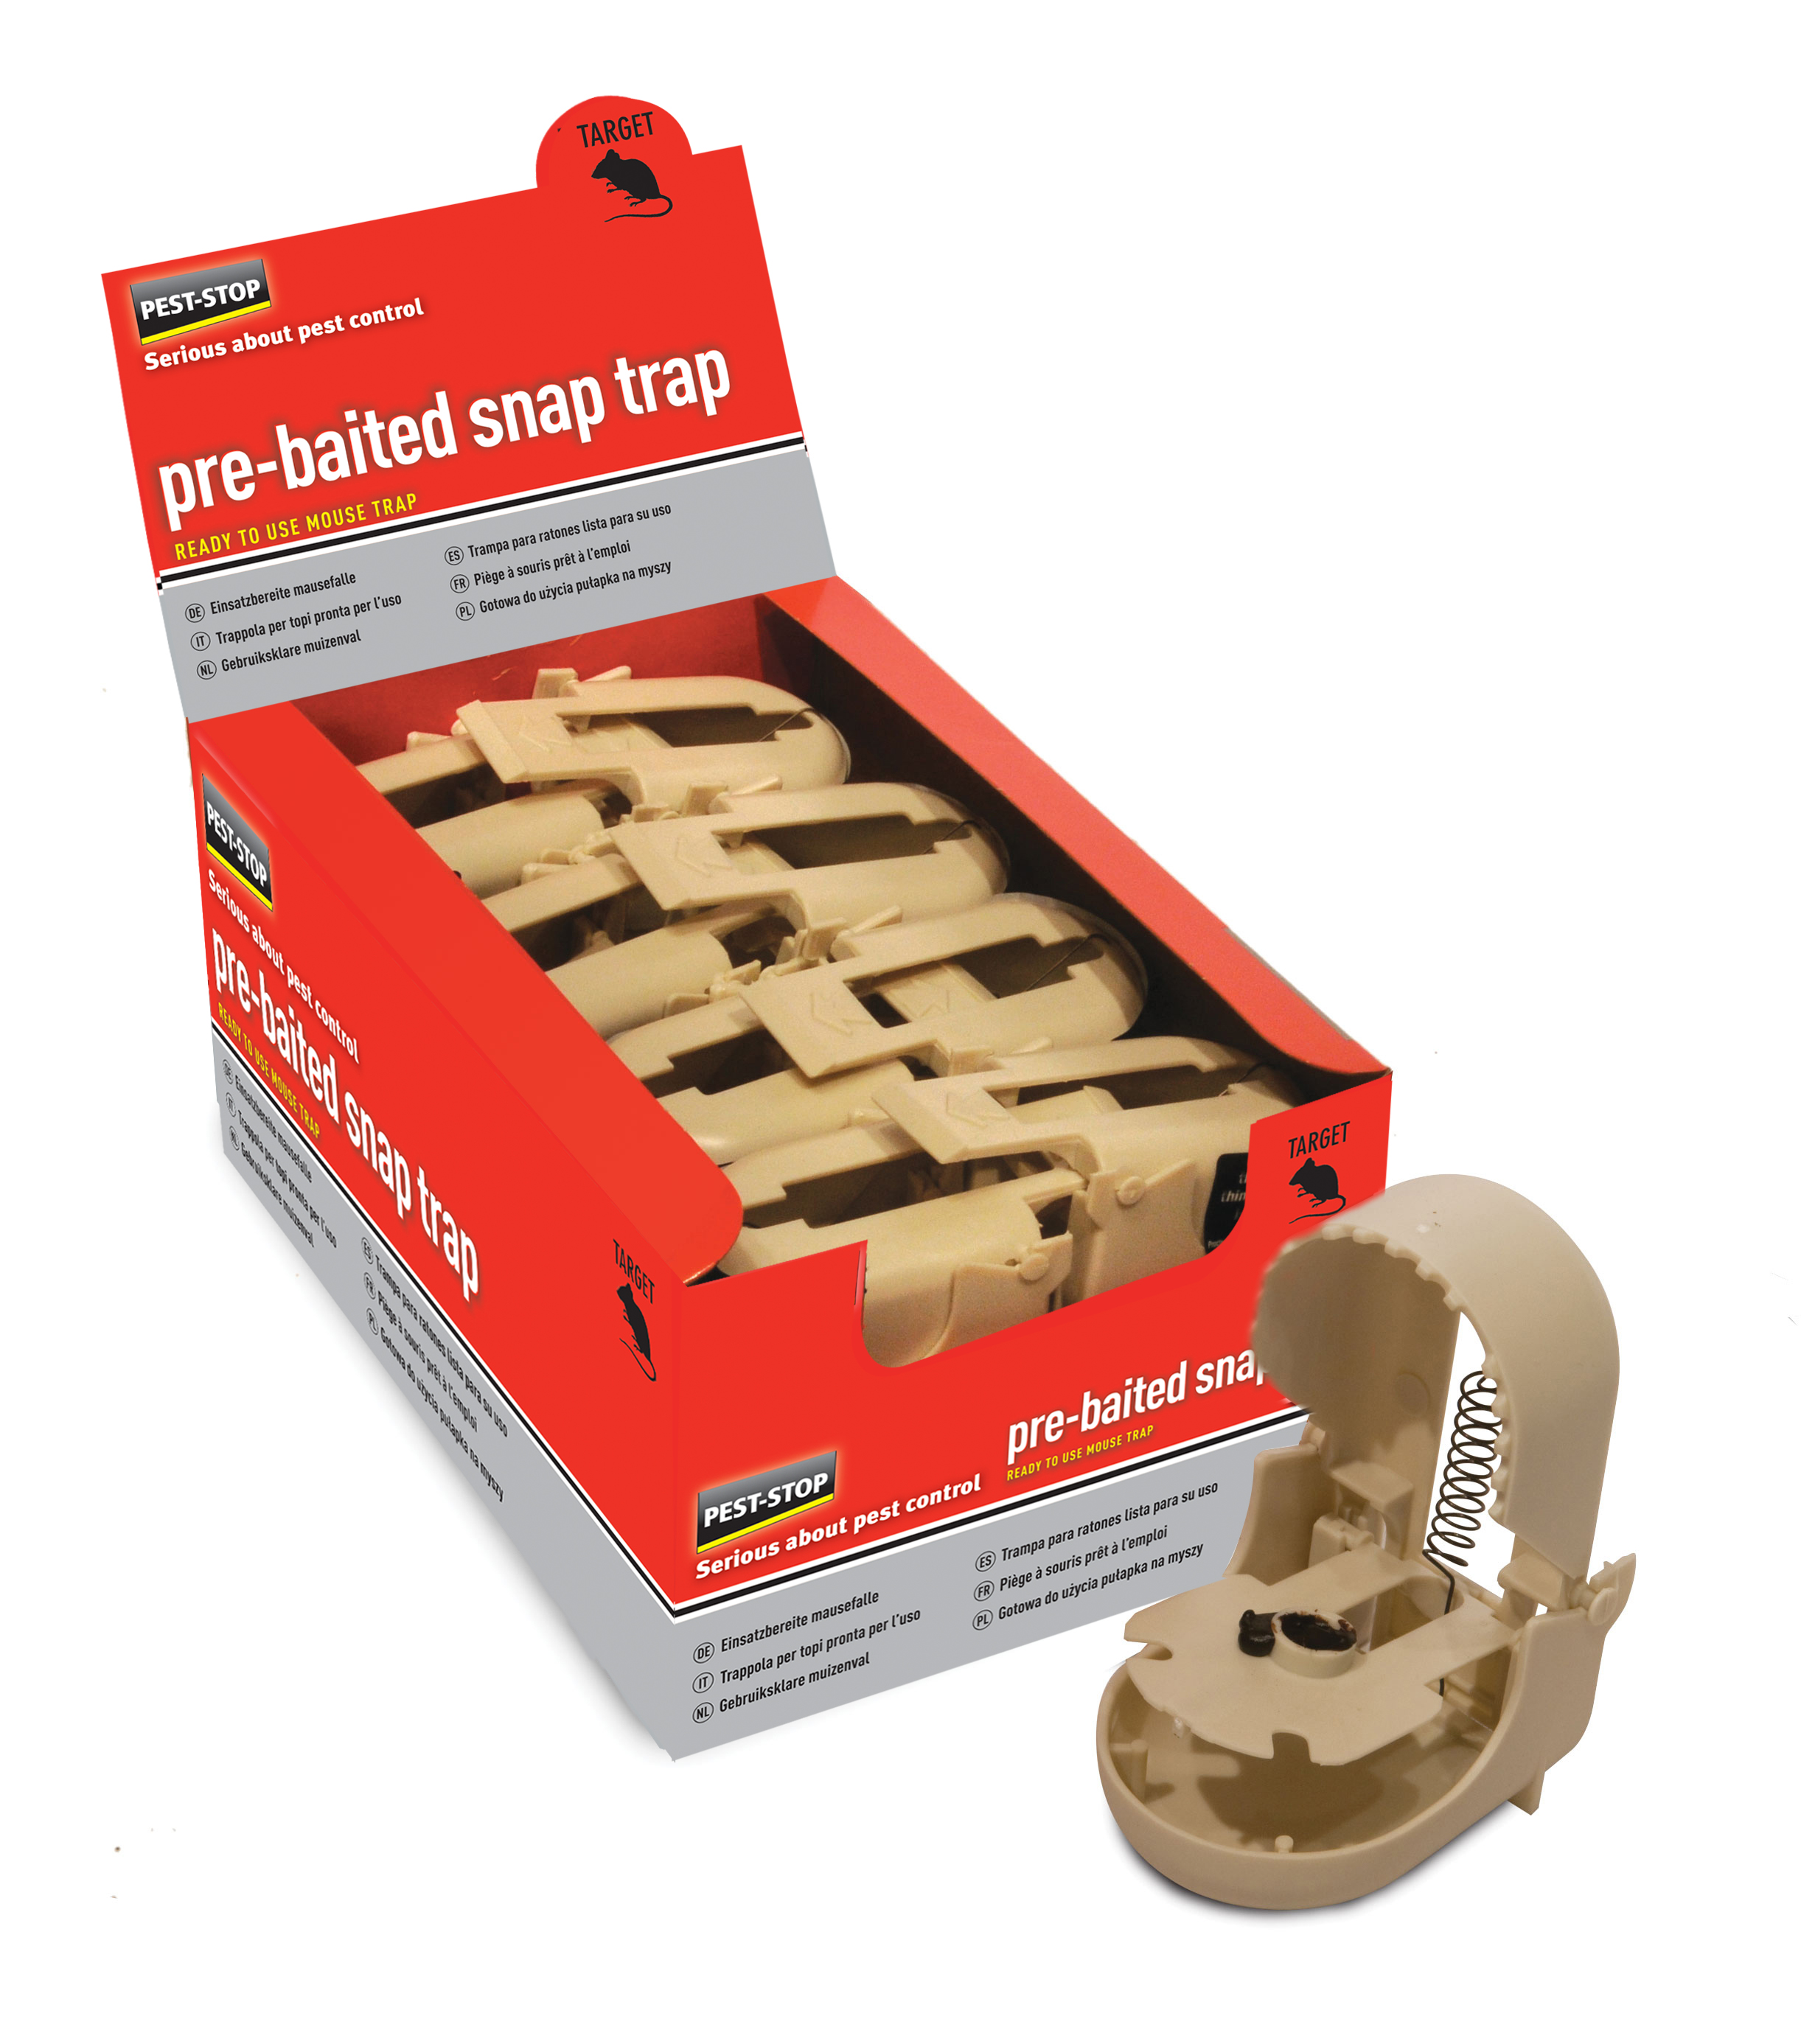 Pest Stop Pre Baited Snap Trap